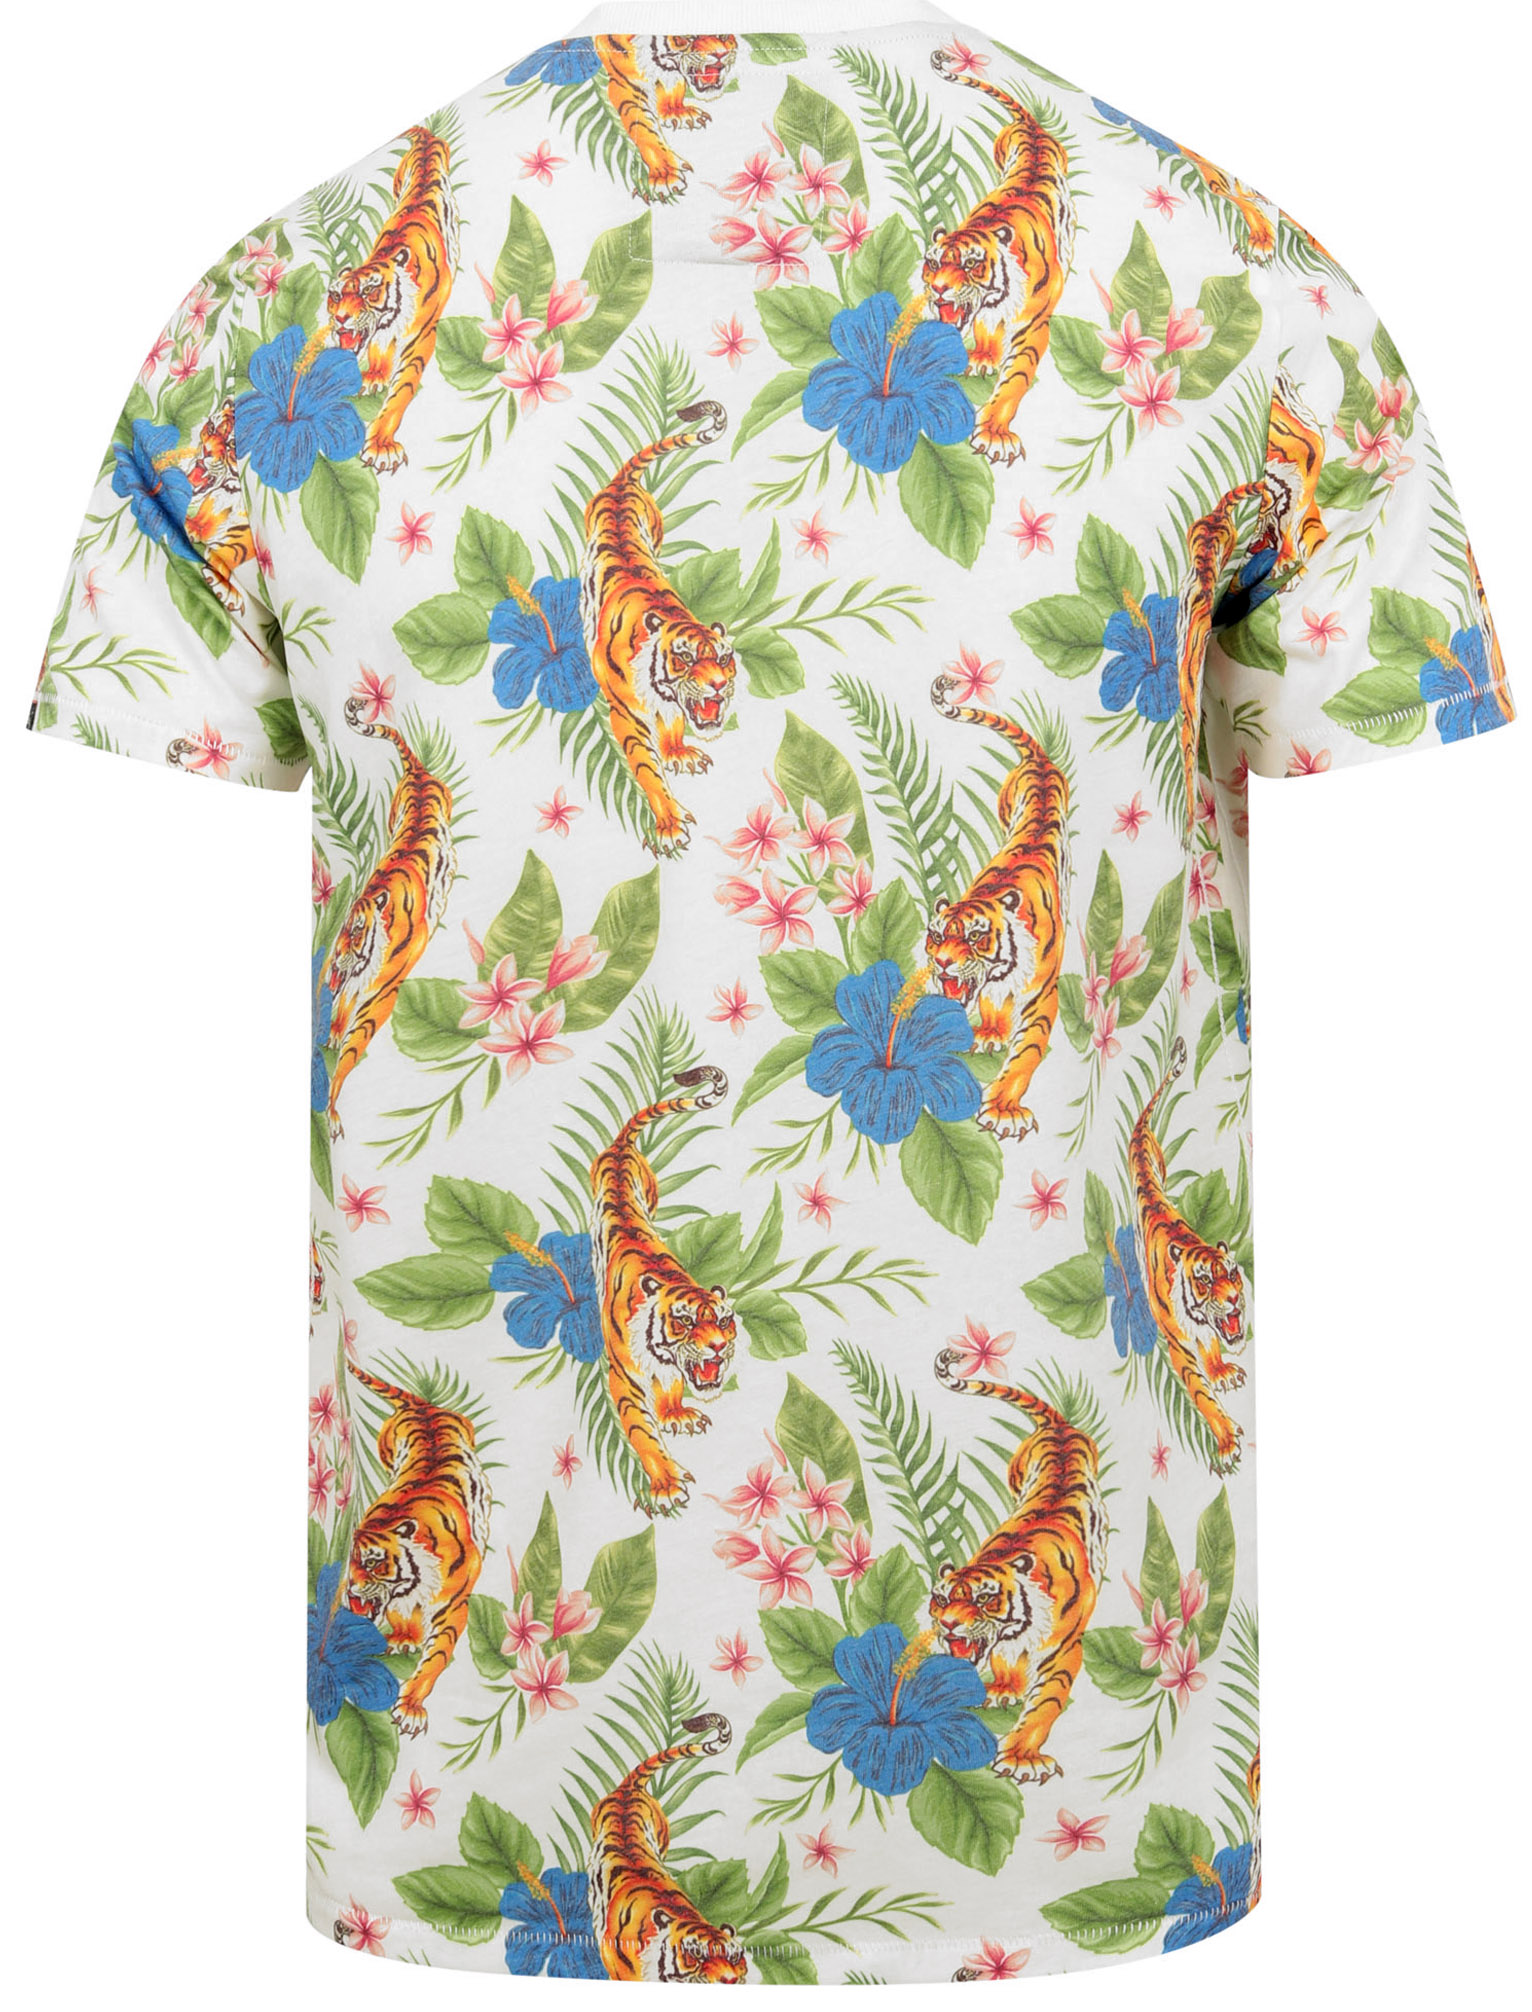 thumbnail 19 - Tokyo-Laundry-Tropical-Print-Crew-Neck-T-Shirt-Hawaiian-Floral-Summer-Holiday